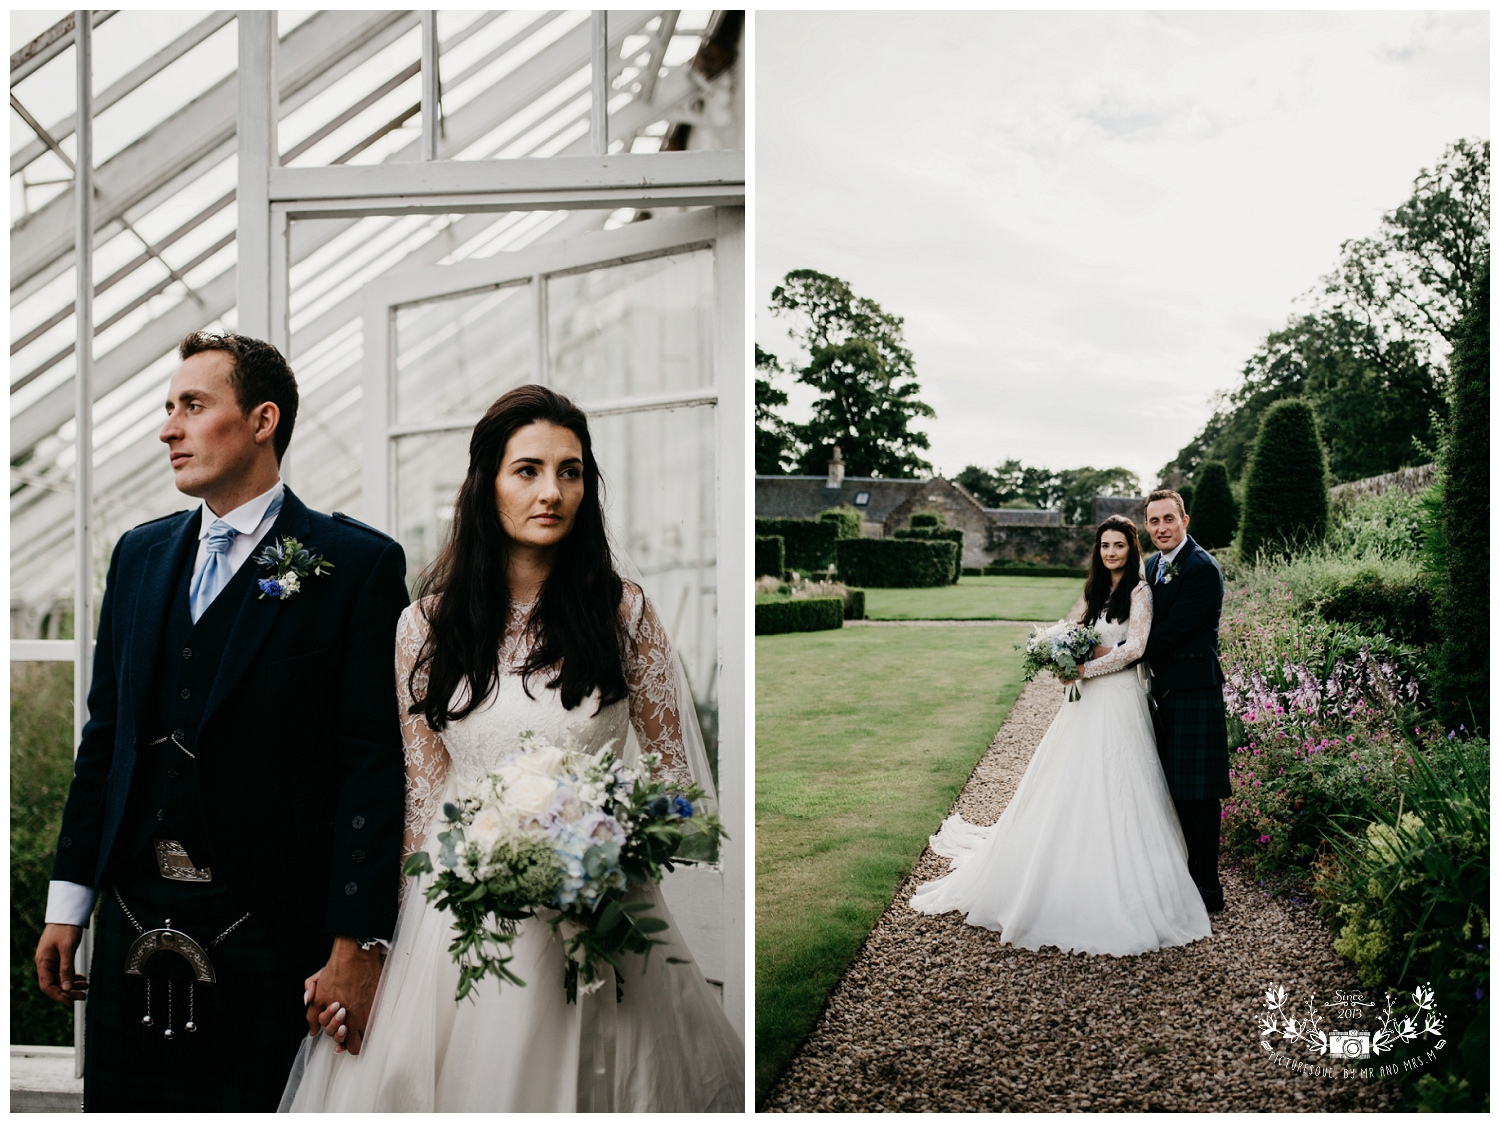 St Michael's Linlithgow and Carlowrie Castle Wedding, Scottish wedding photography, Picturesque by Mr and Mrs M_0047.jpg